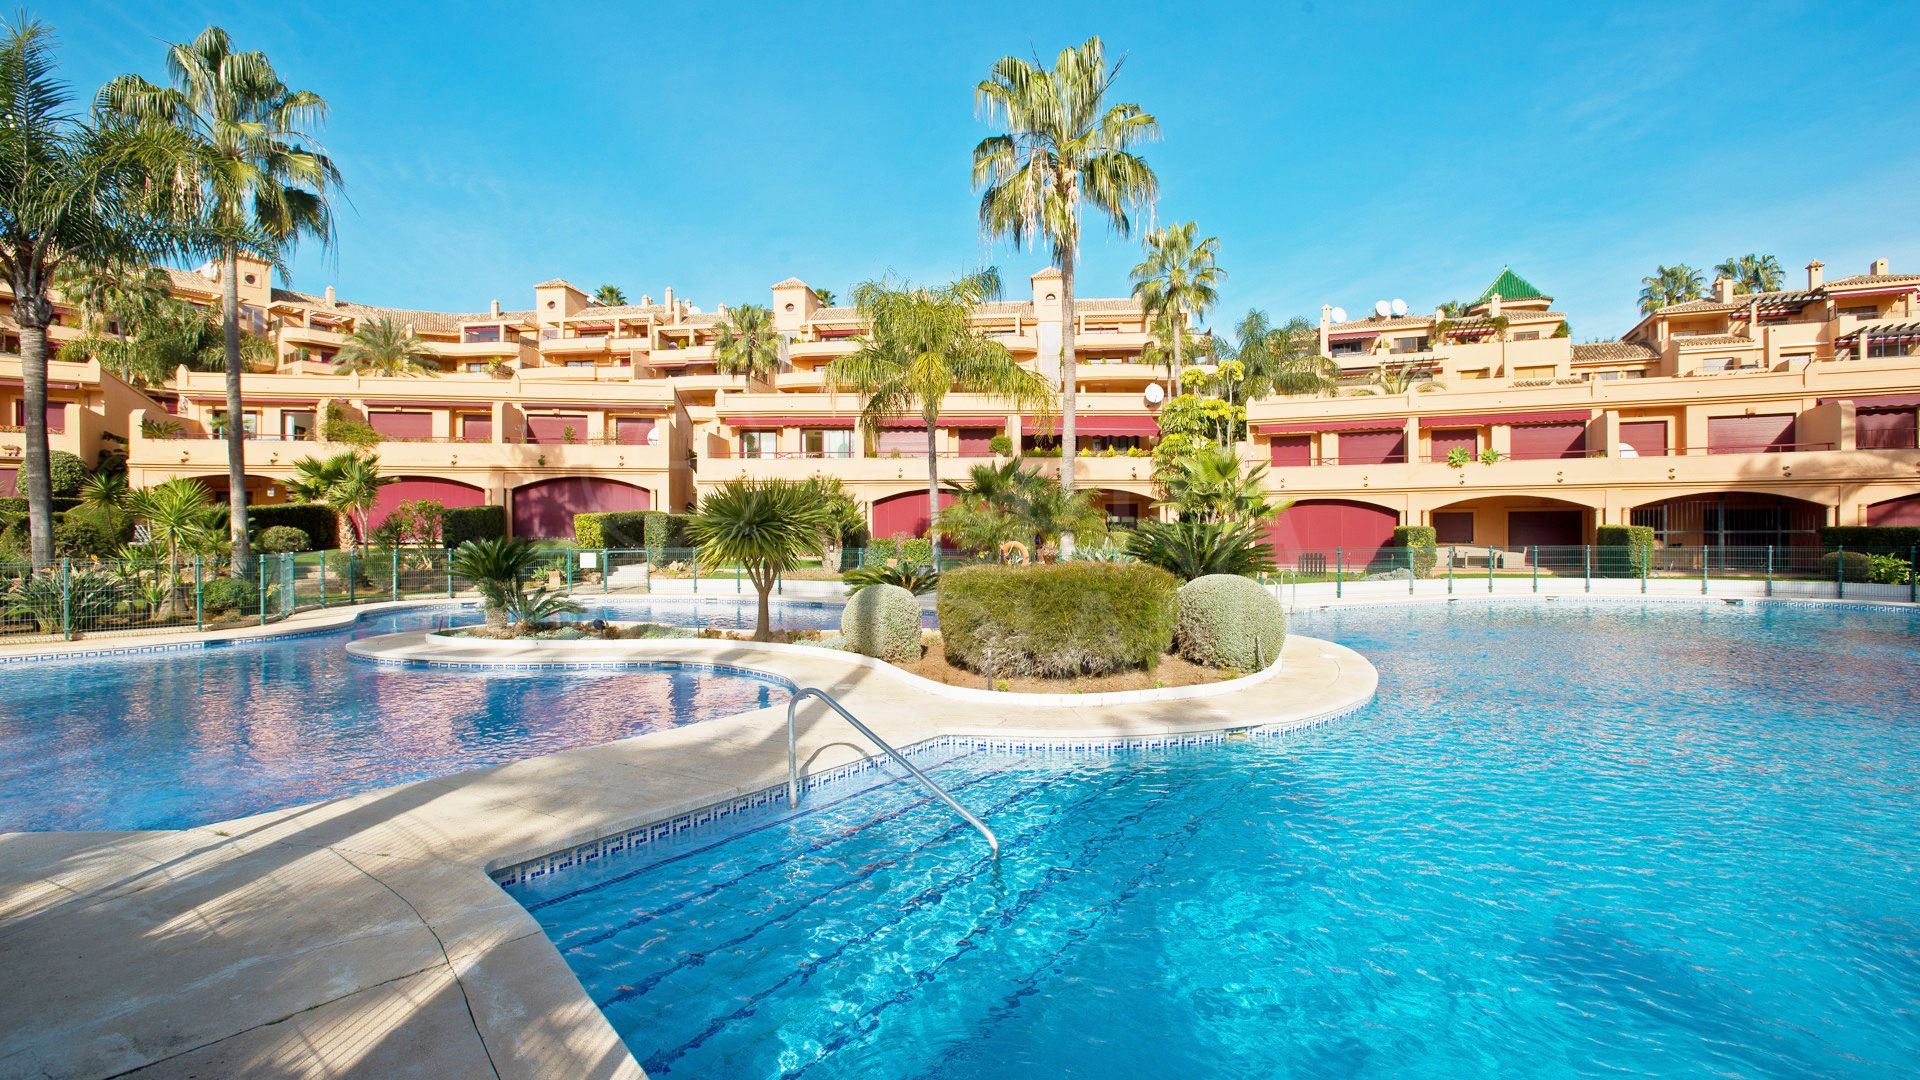 Magnificent 5 bedroom Luxury Apartment for sale in Estepona